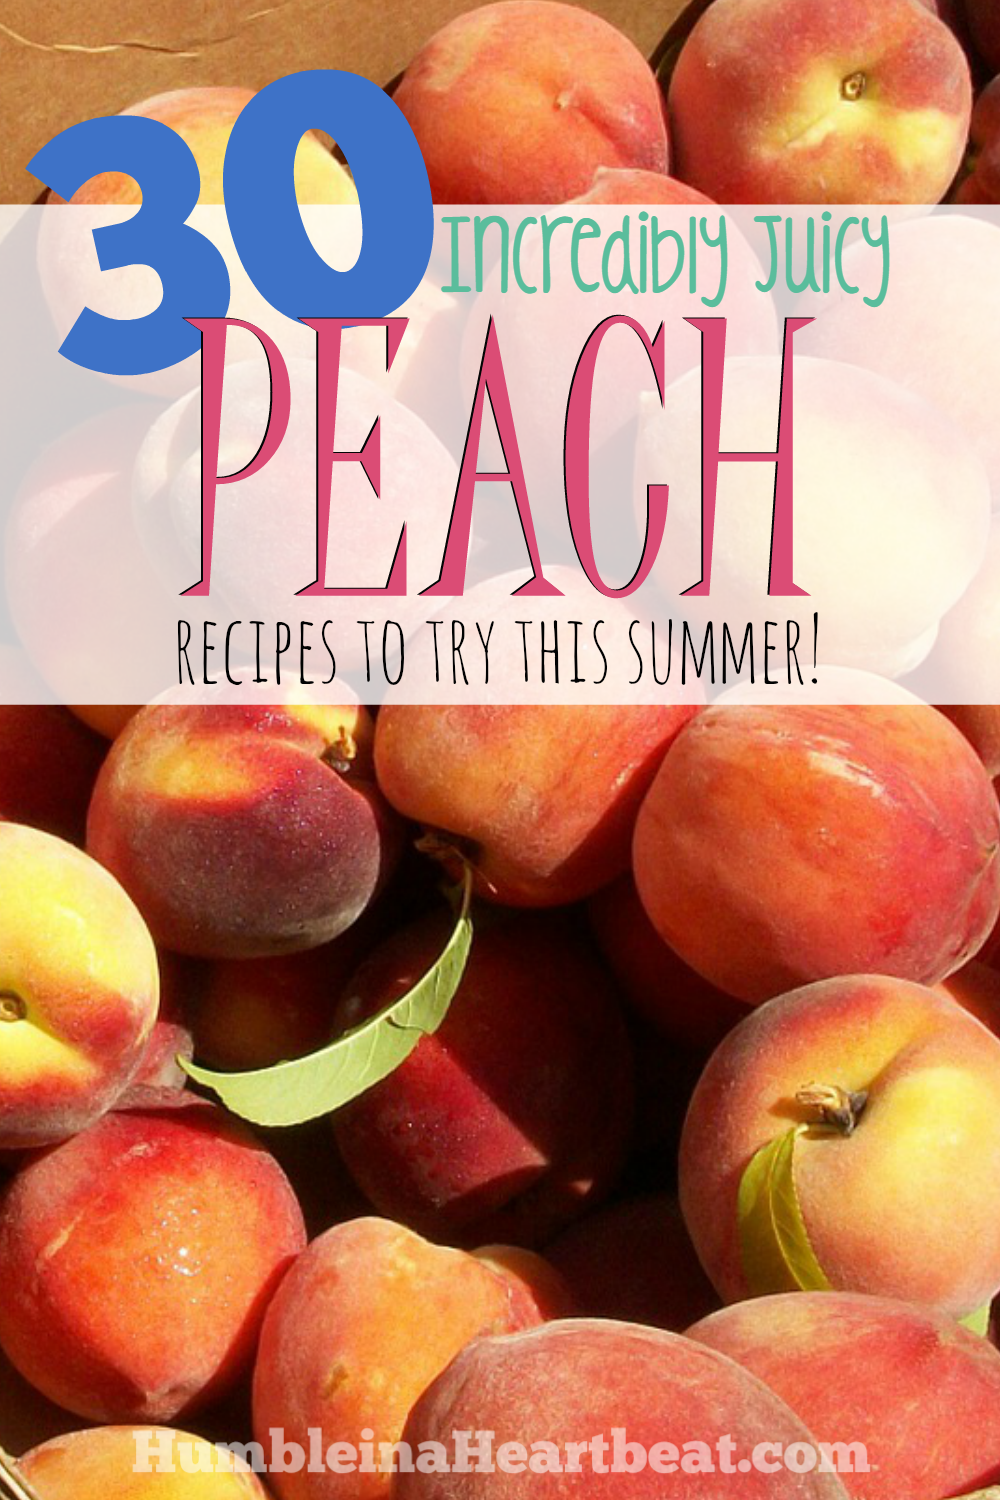 There's something for everyone in this collection of peach recipes! If you find yourself with too many peaches, these ideas will be helpful and delicious!